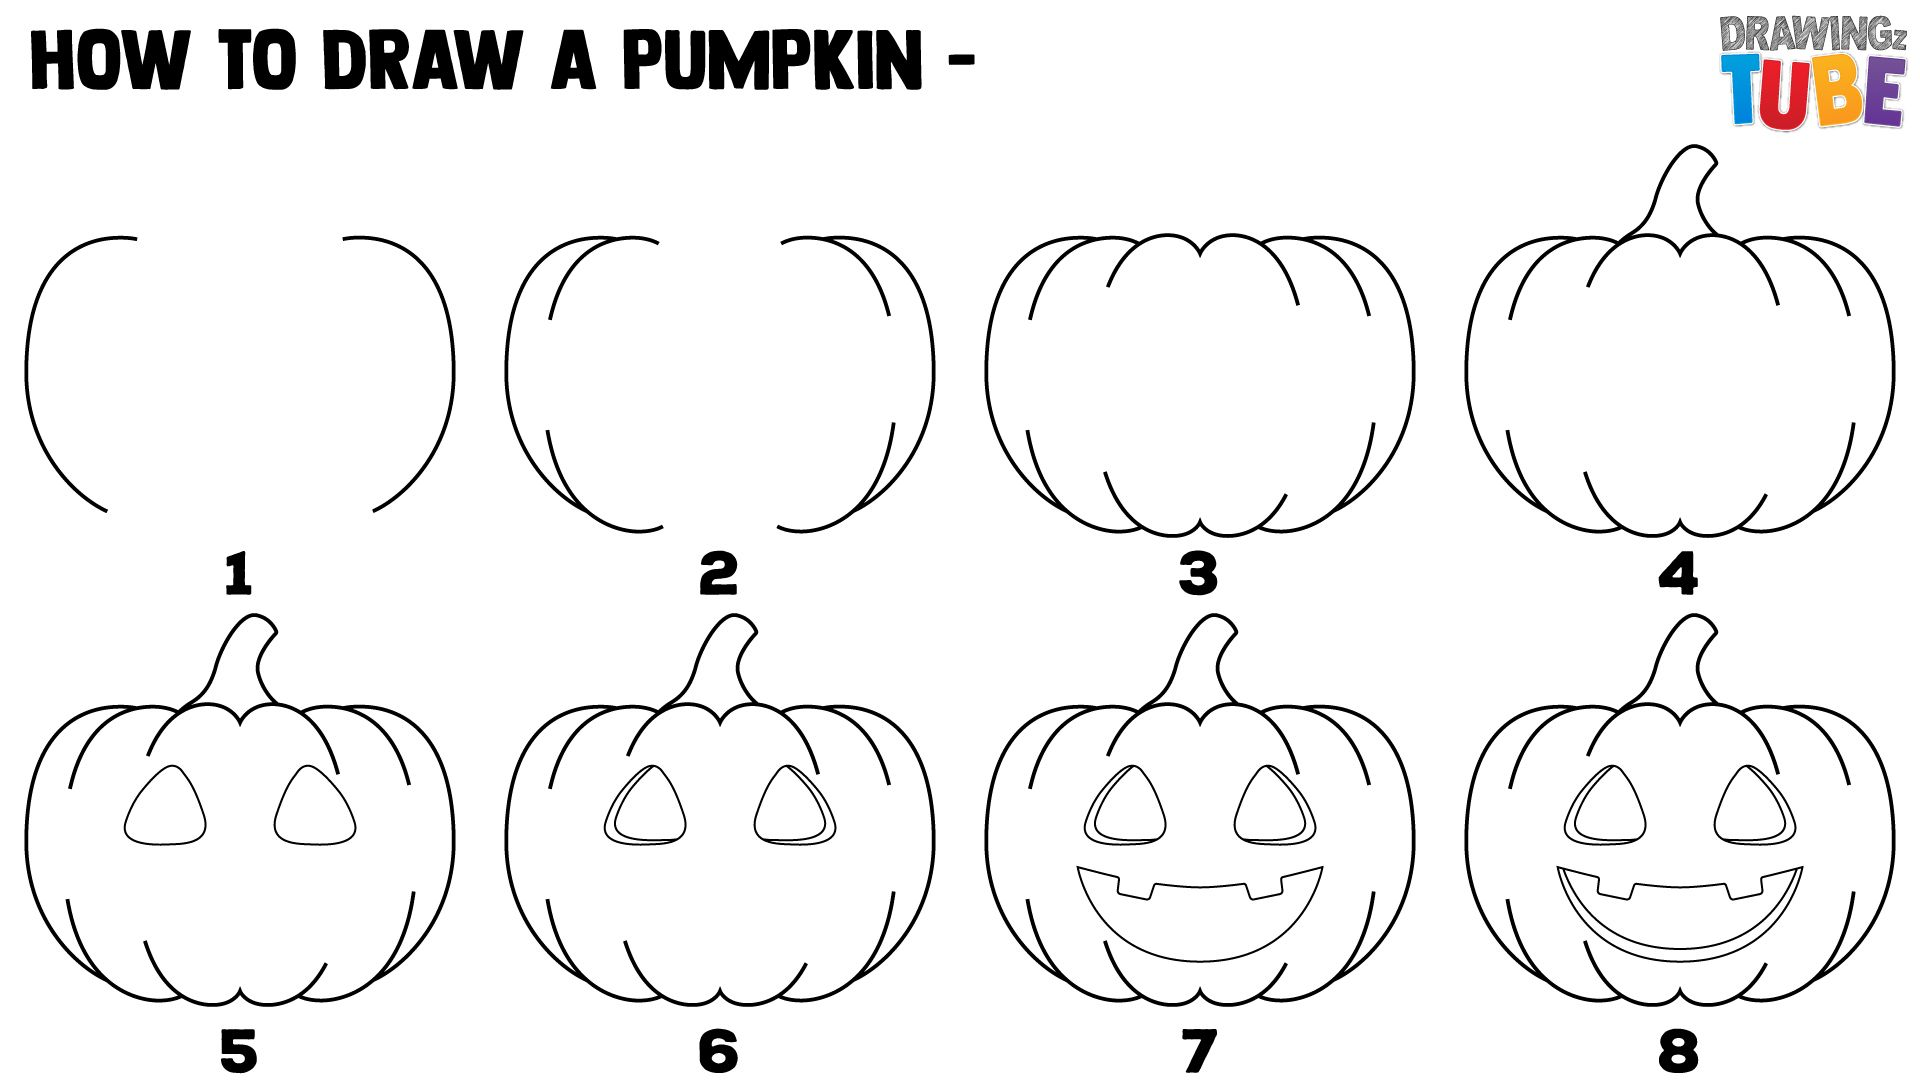 Simple pumpkin drawing (jack o lantern drawing).💚 for drawi. How To Draw A Halloween Pumpkin For Kids Pumpkin Drawing Halloween Drawings Drawings